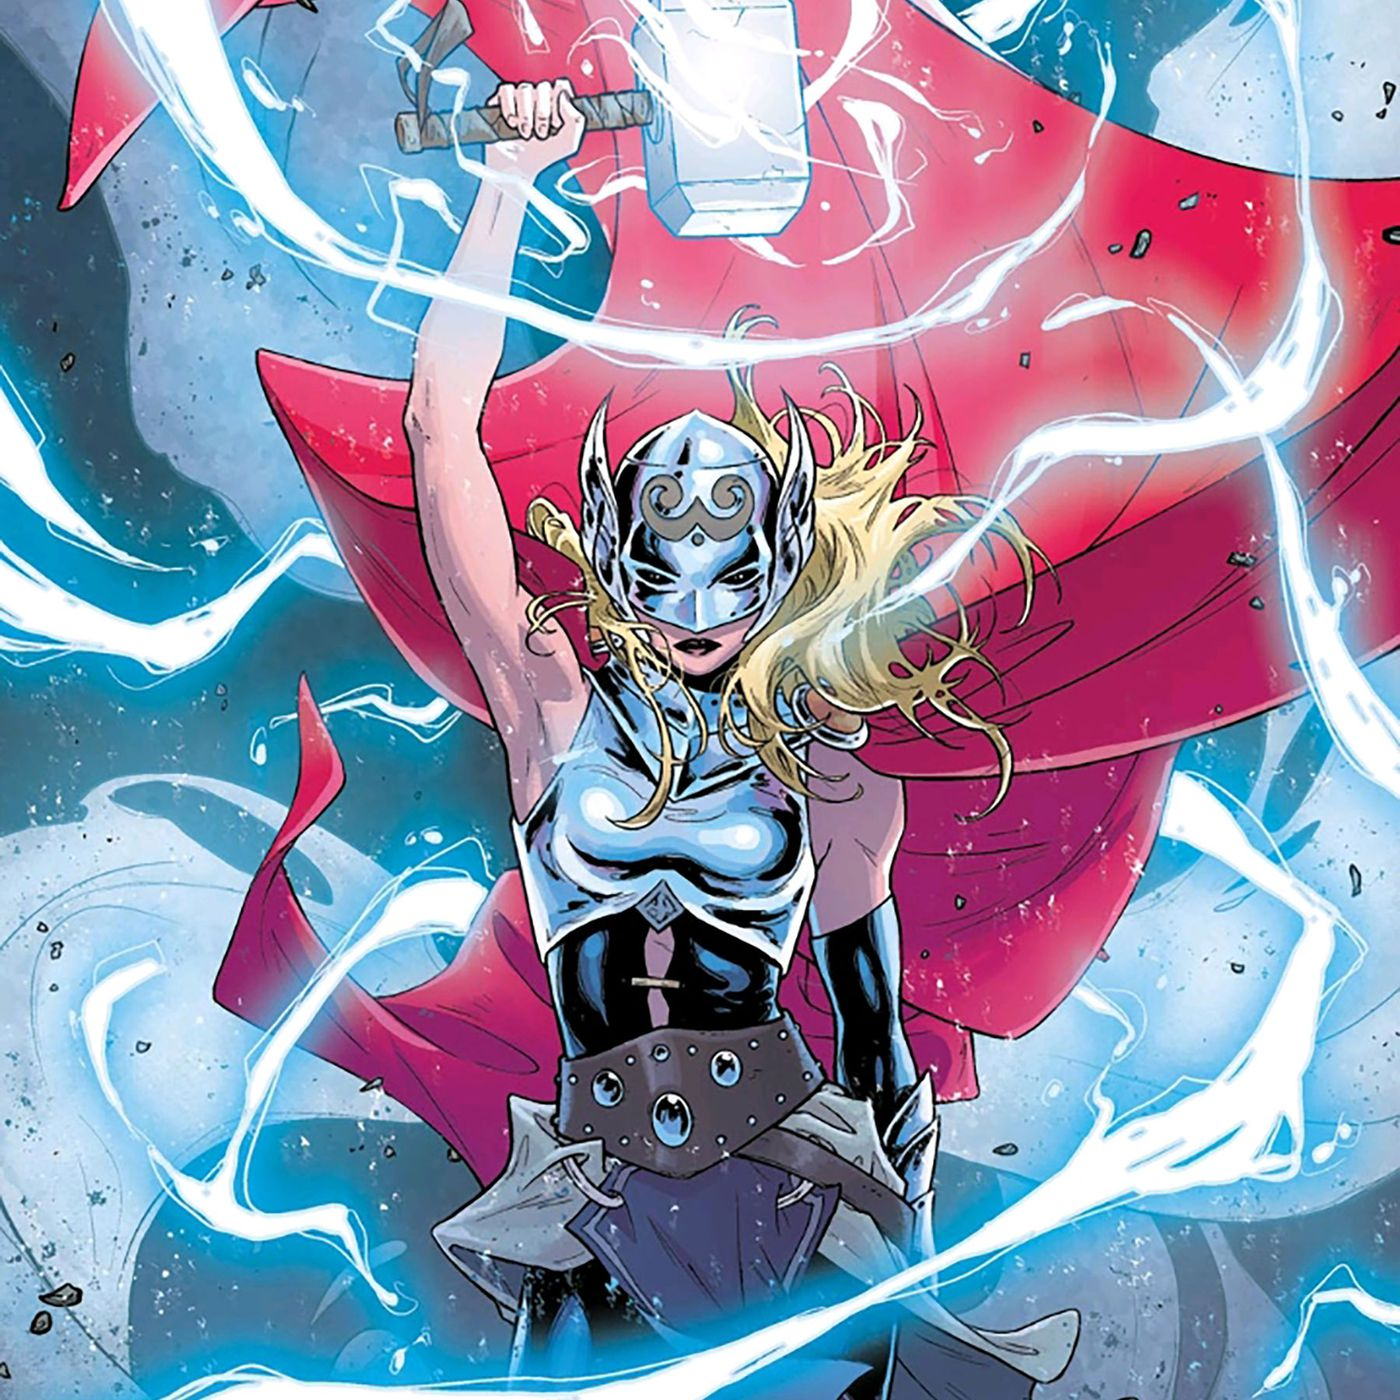 It'll be interesting to see how Jane turns into Lady Thor.